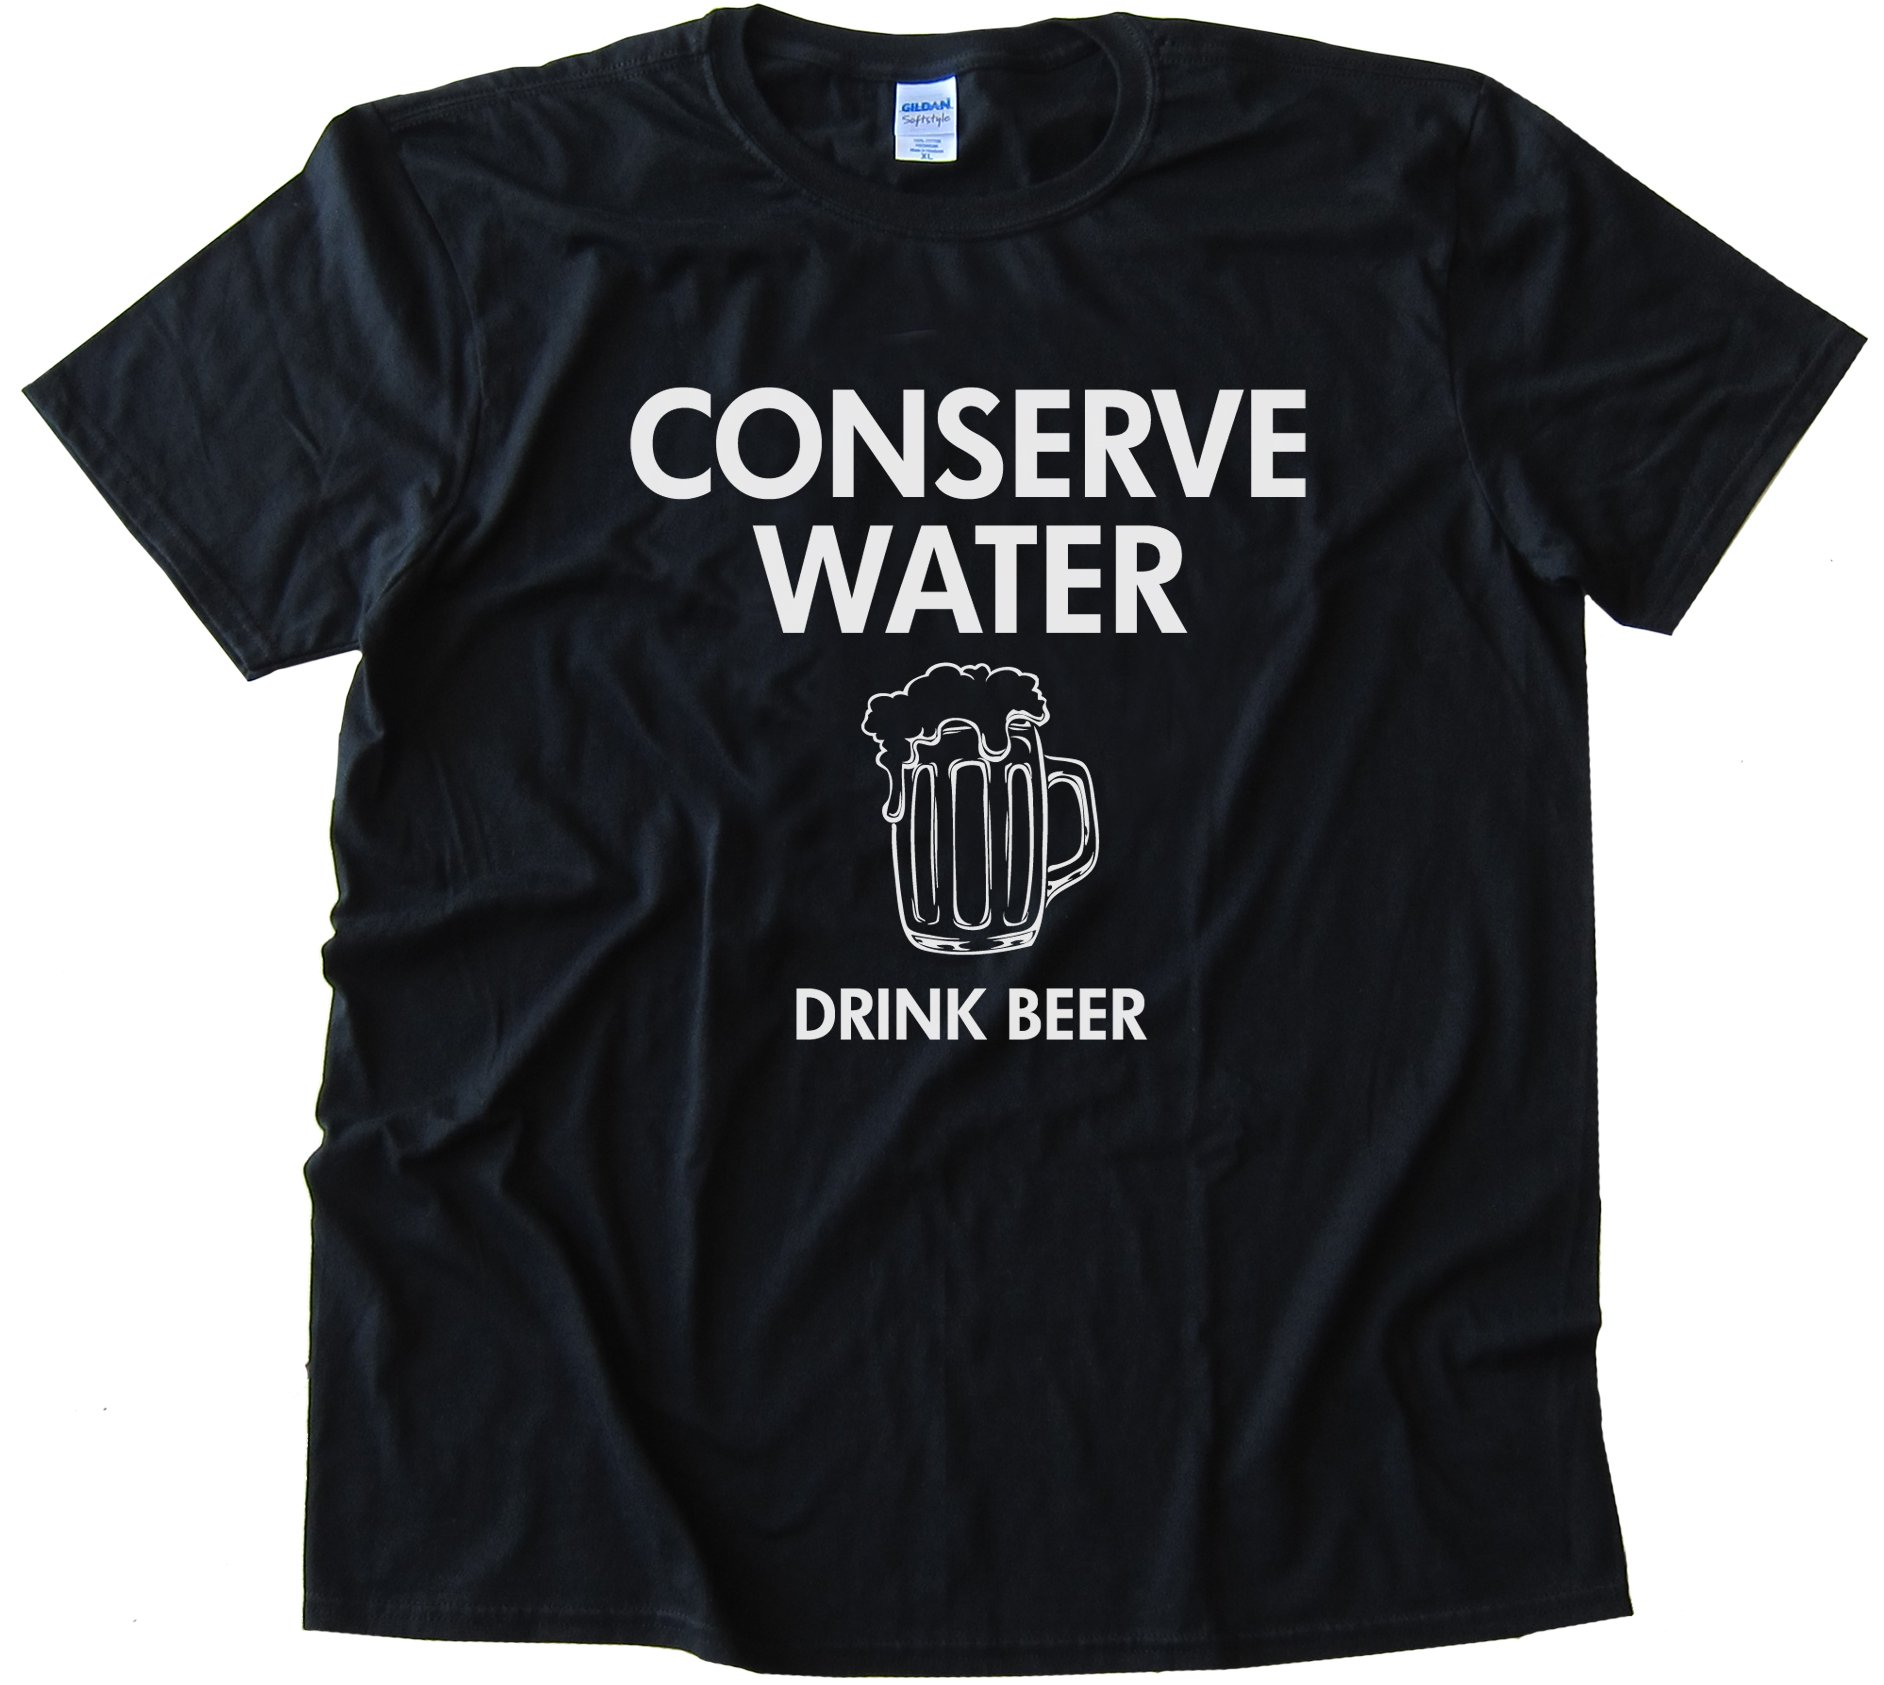 Conserve Water Drink Beer - Tee Shirt